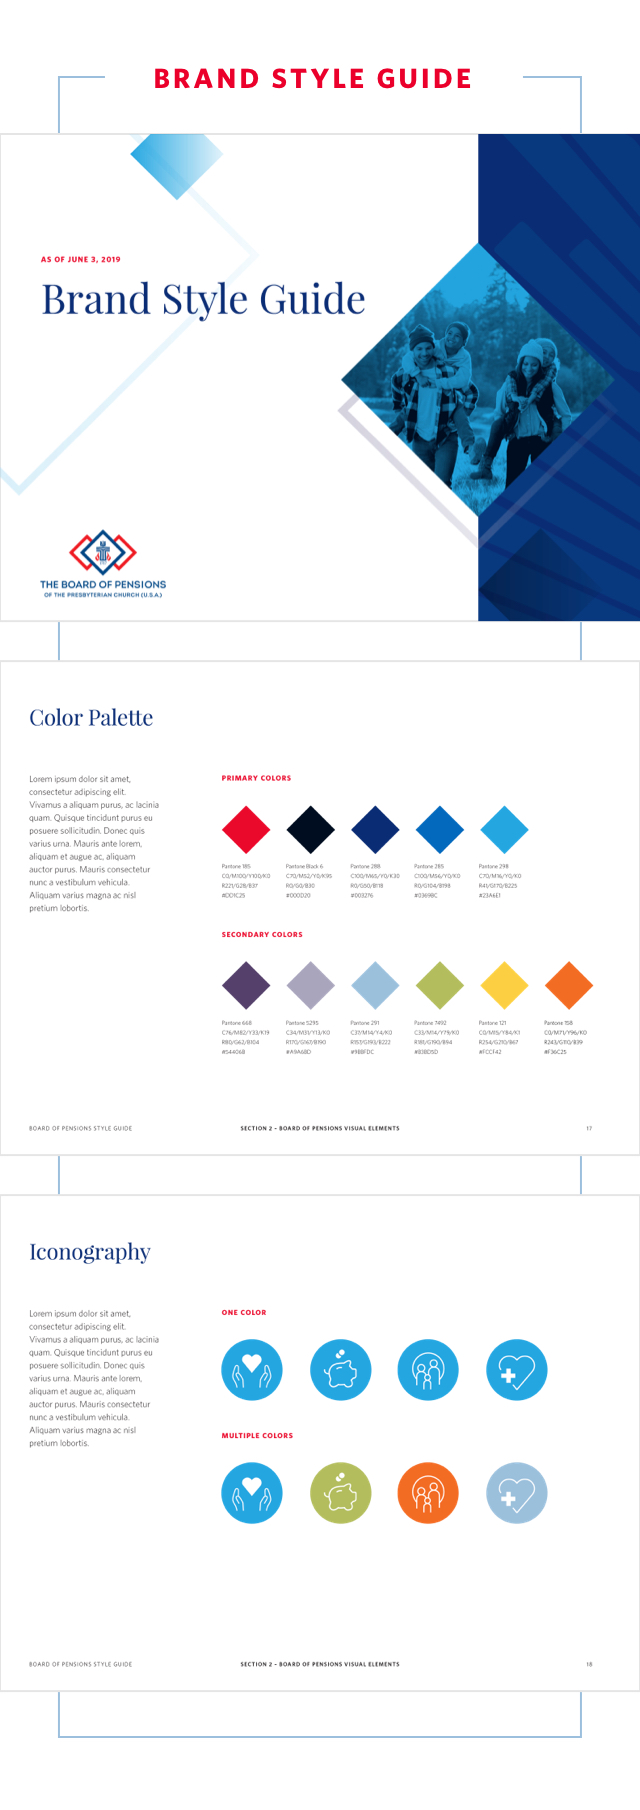 Style Guide for Board of Pensions